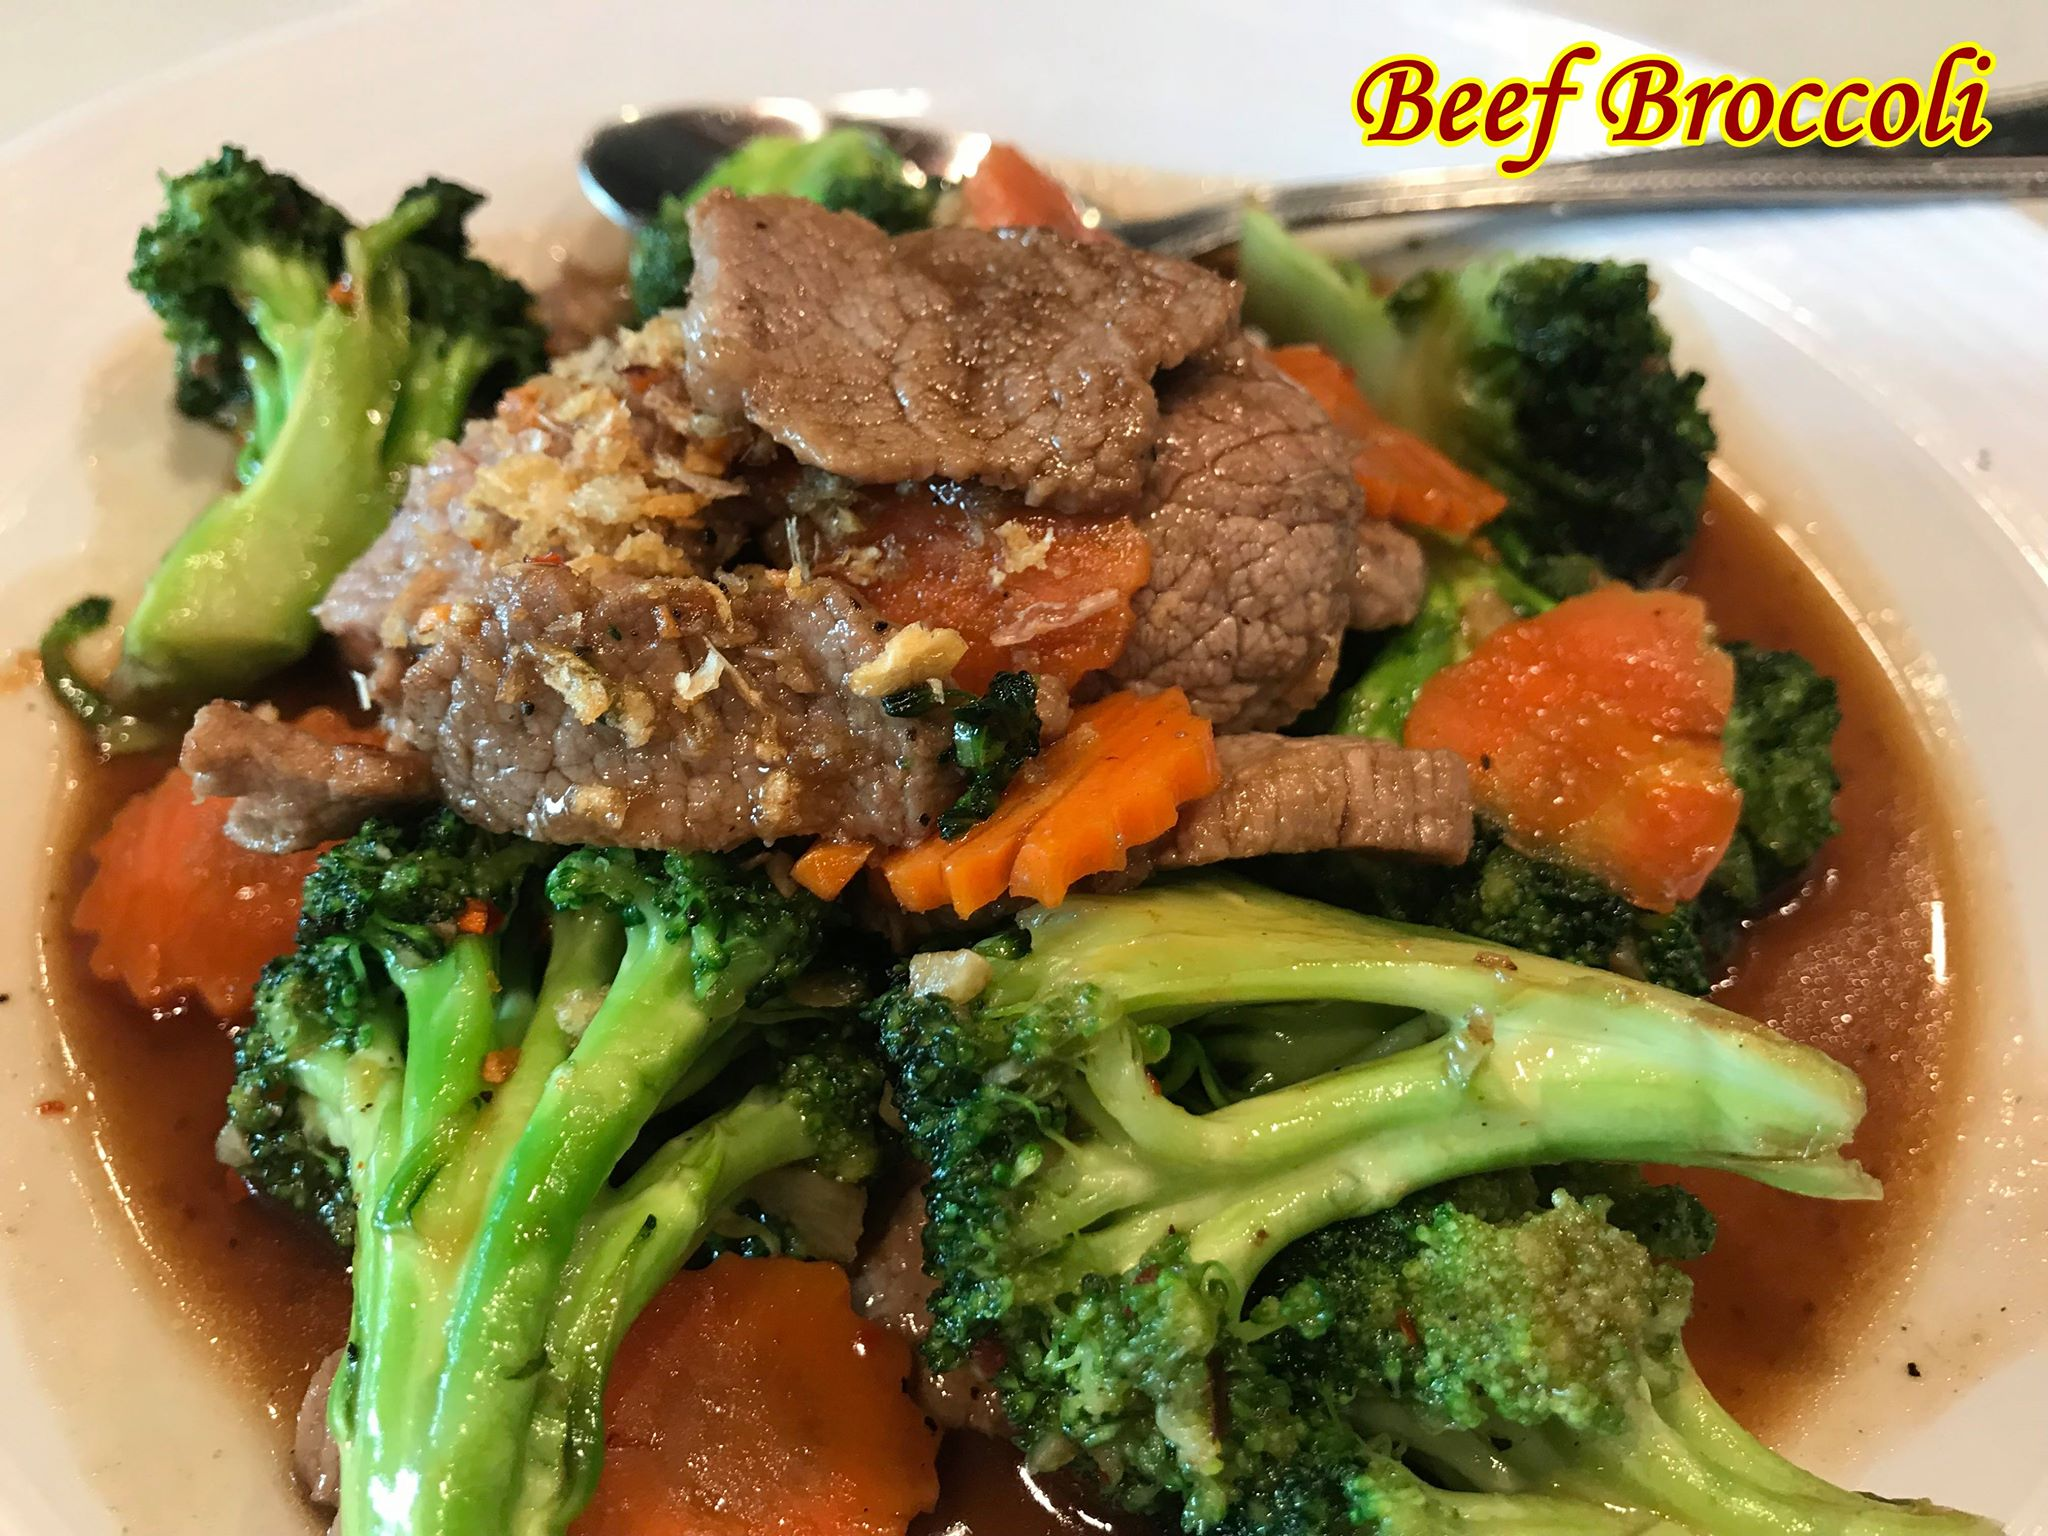 Beef Broccoli (Lunch) Image